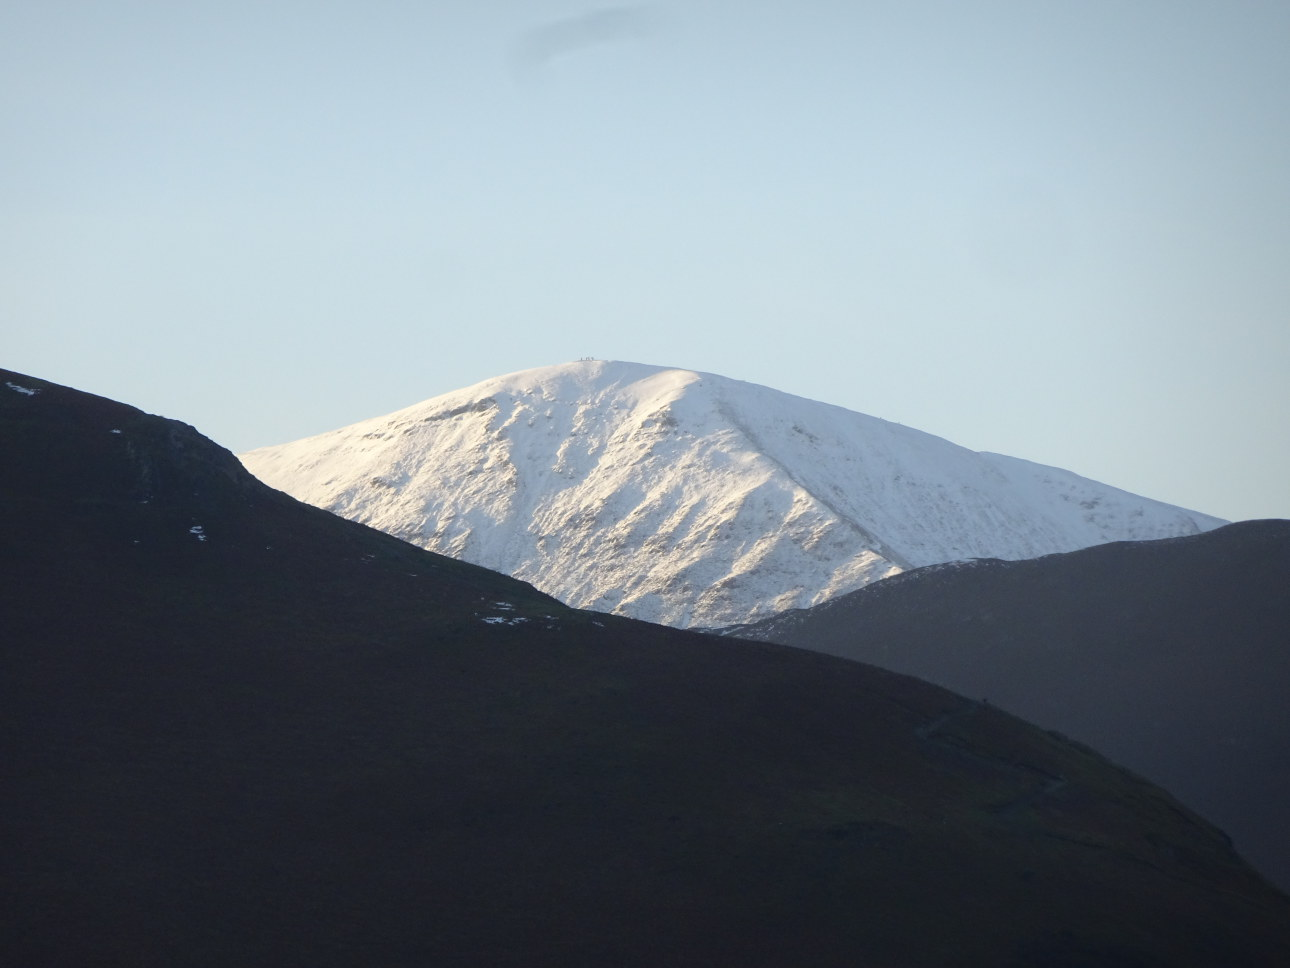 Grisedale Pike from the shoreline of  Derwentwater. Taken on 5/12/20 at 3:50pm.